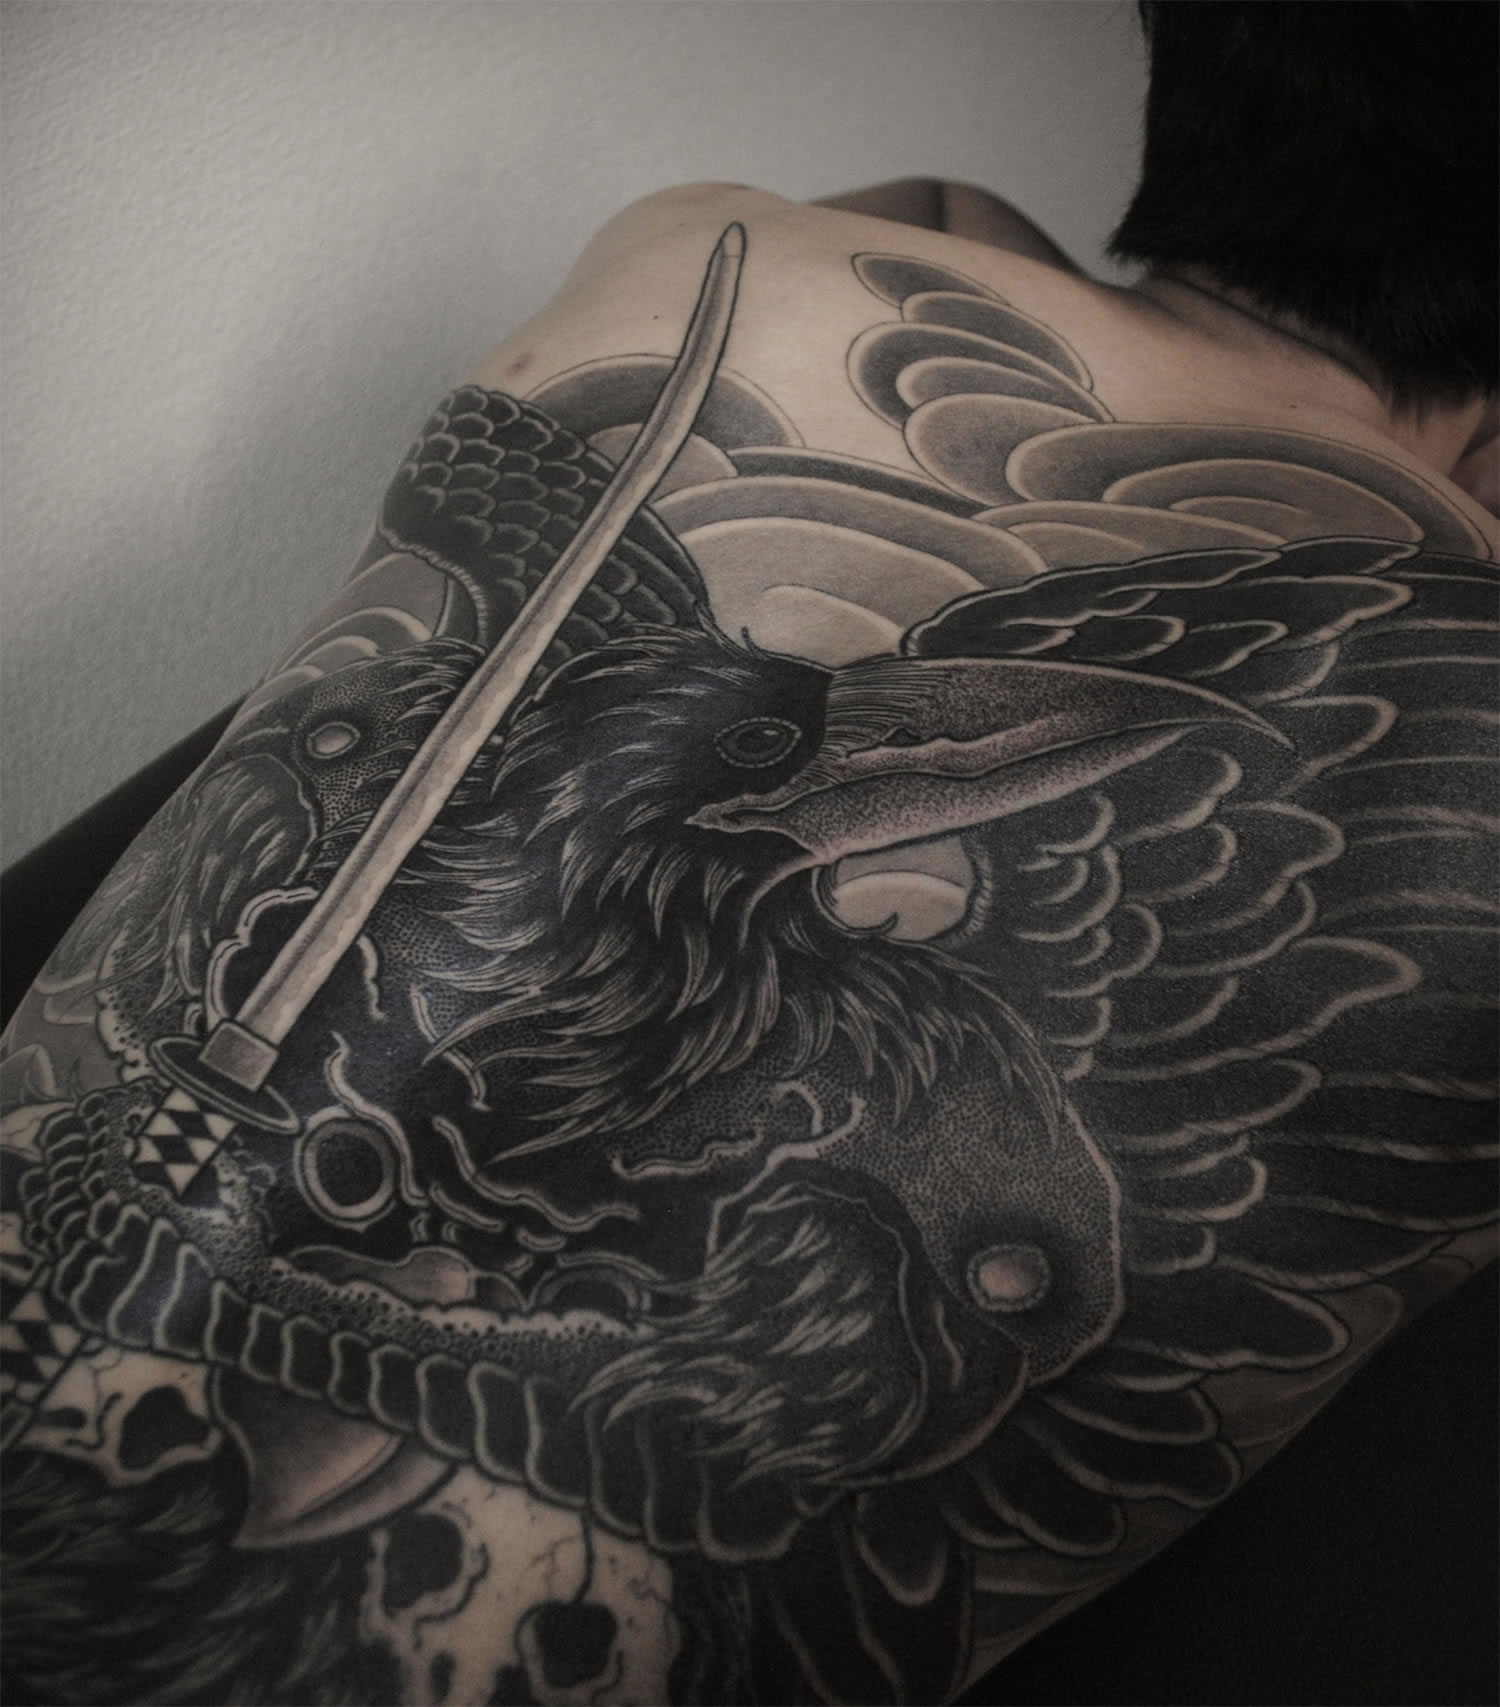 back tattoo, black ink, bird